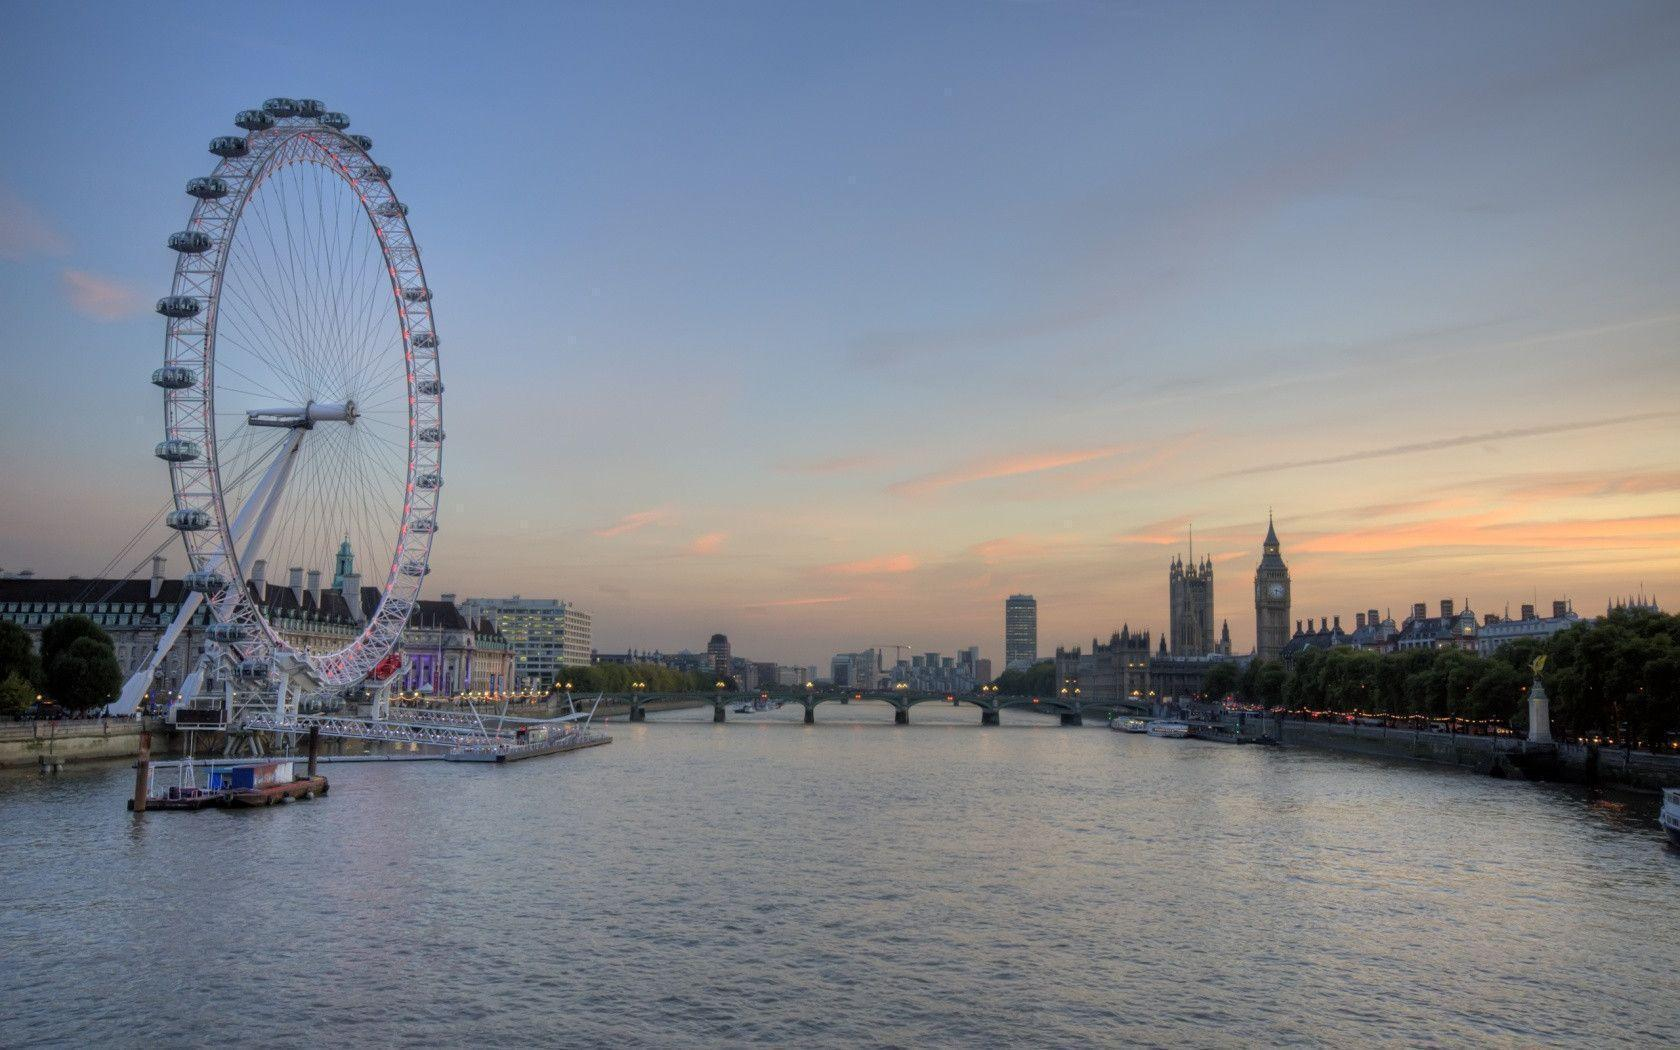 1680x1050 London Eye and Big Ben desktop PC and Mac wallpaper